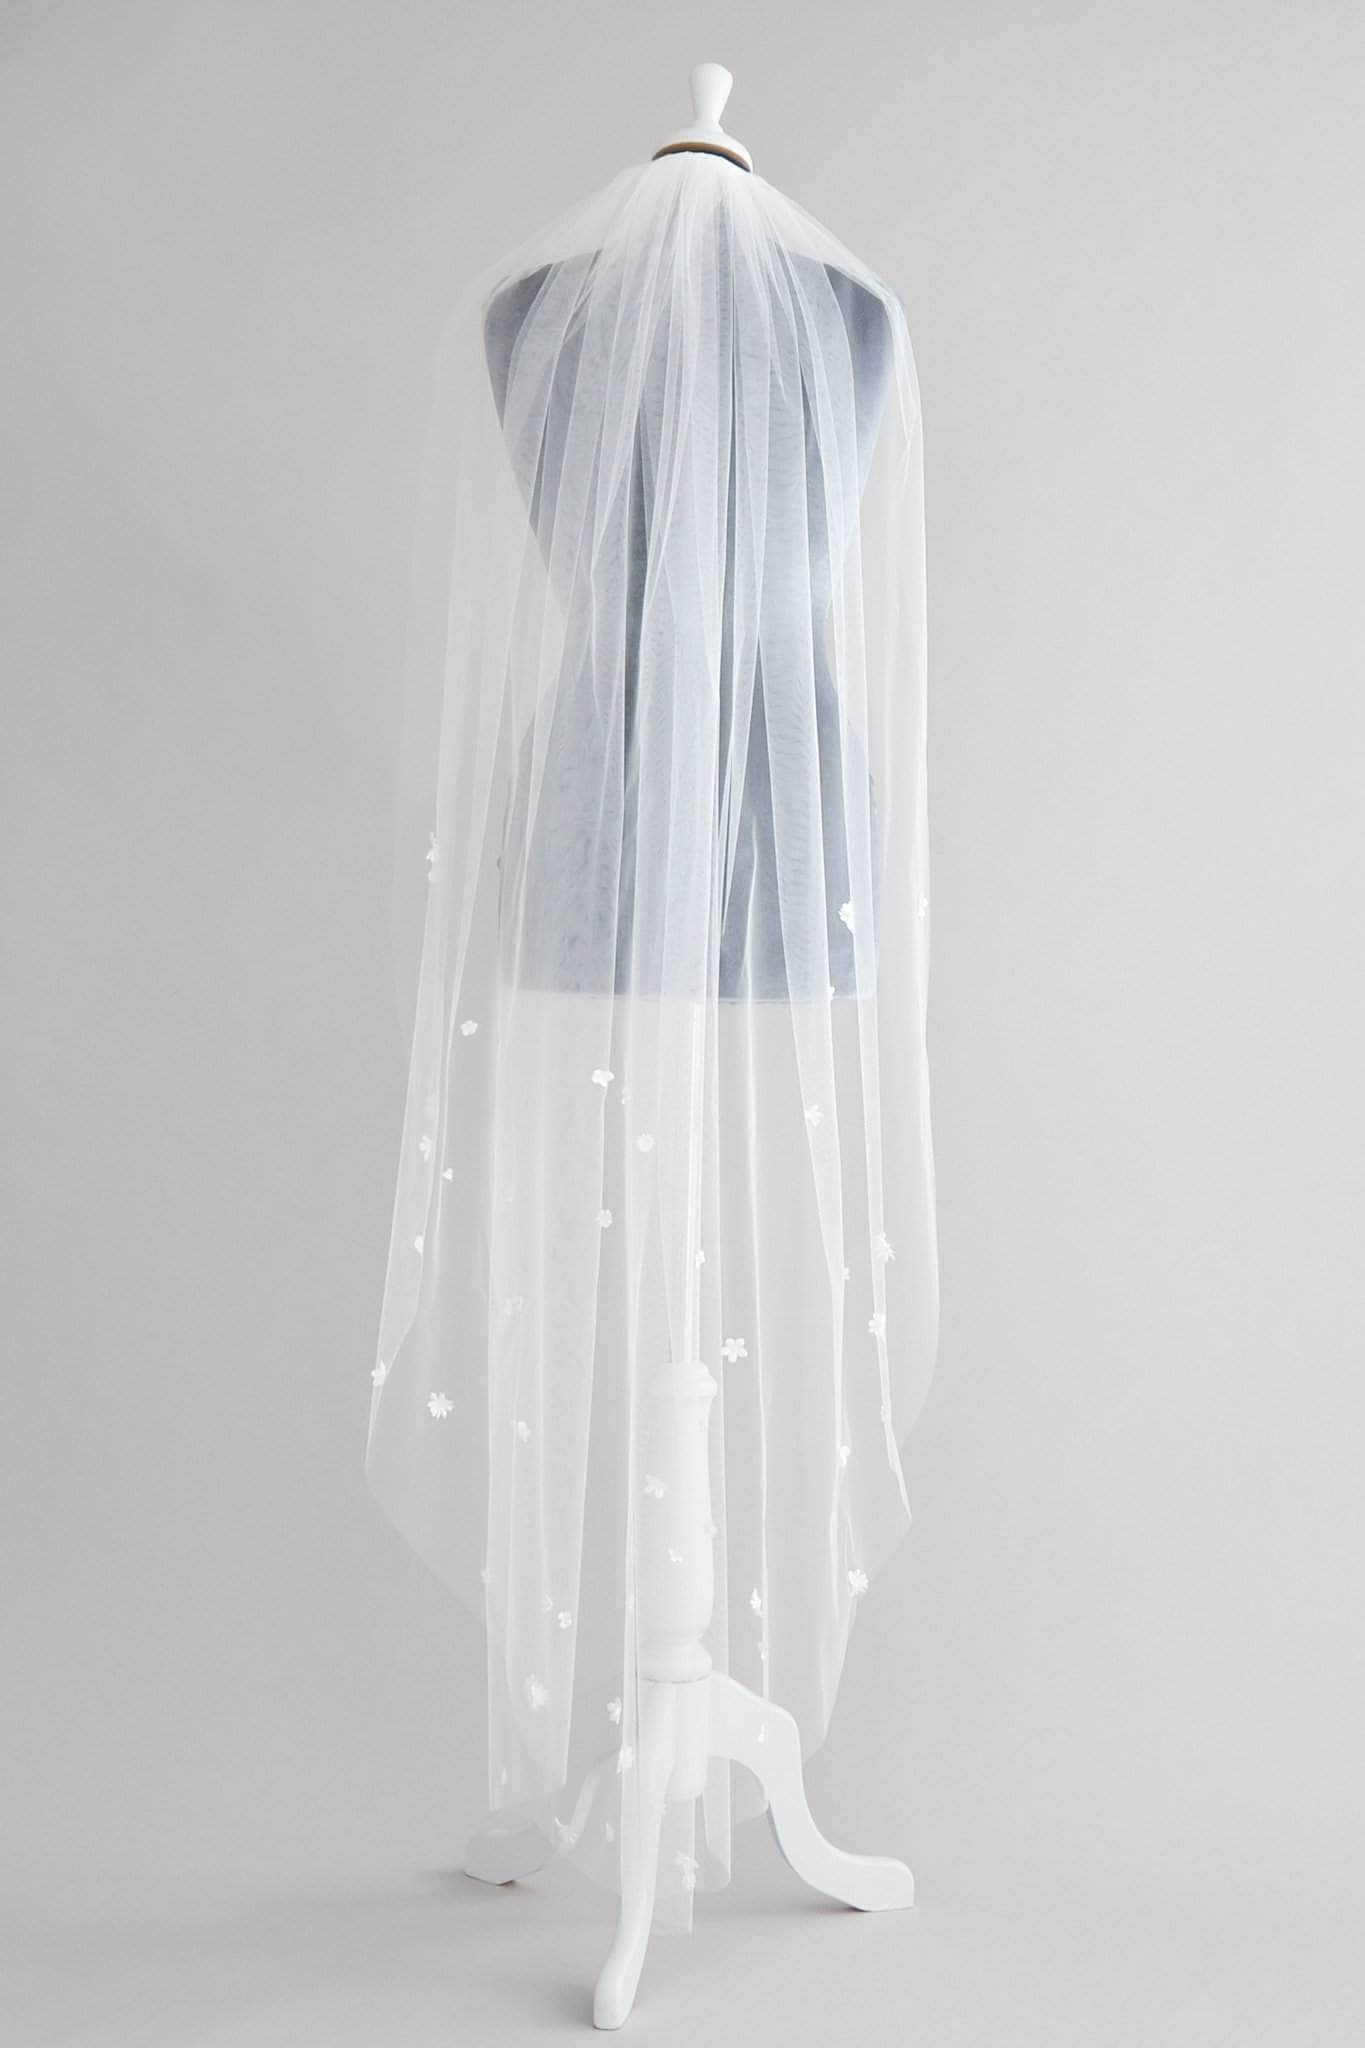 Flower wedding veil - Meadow